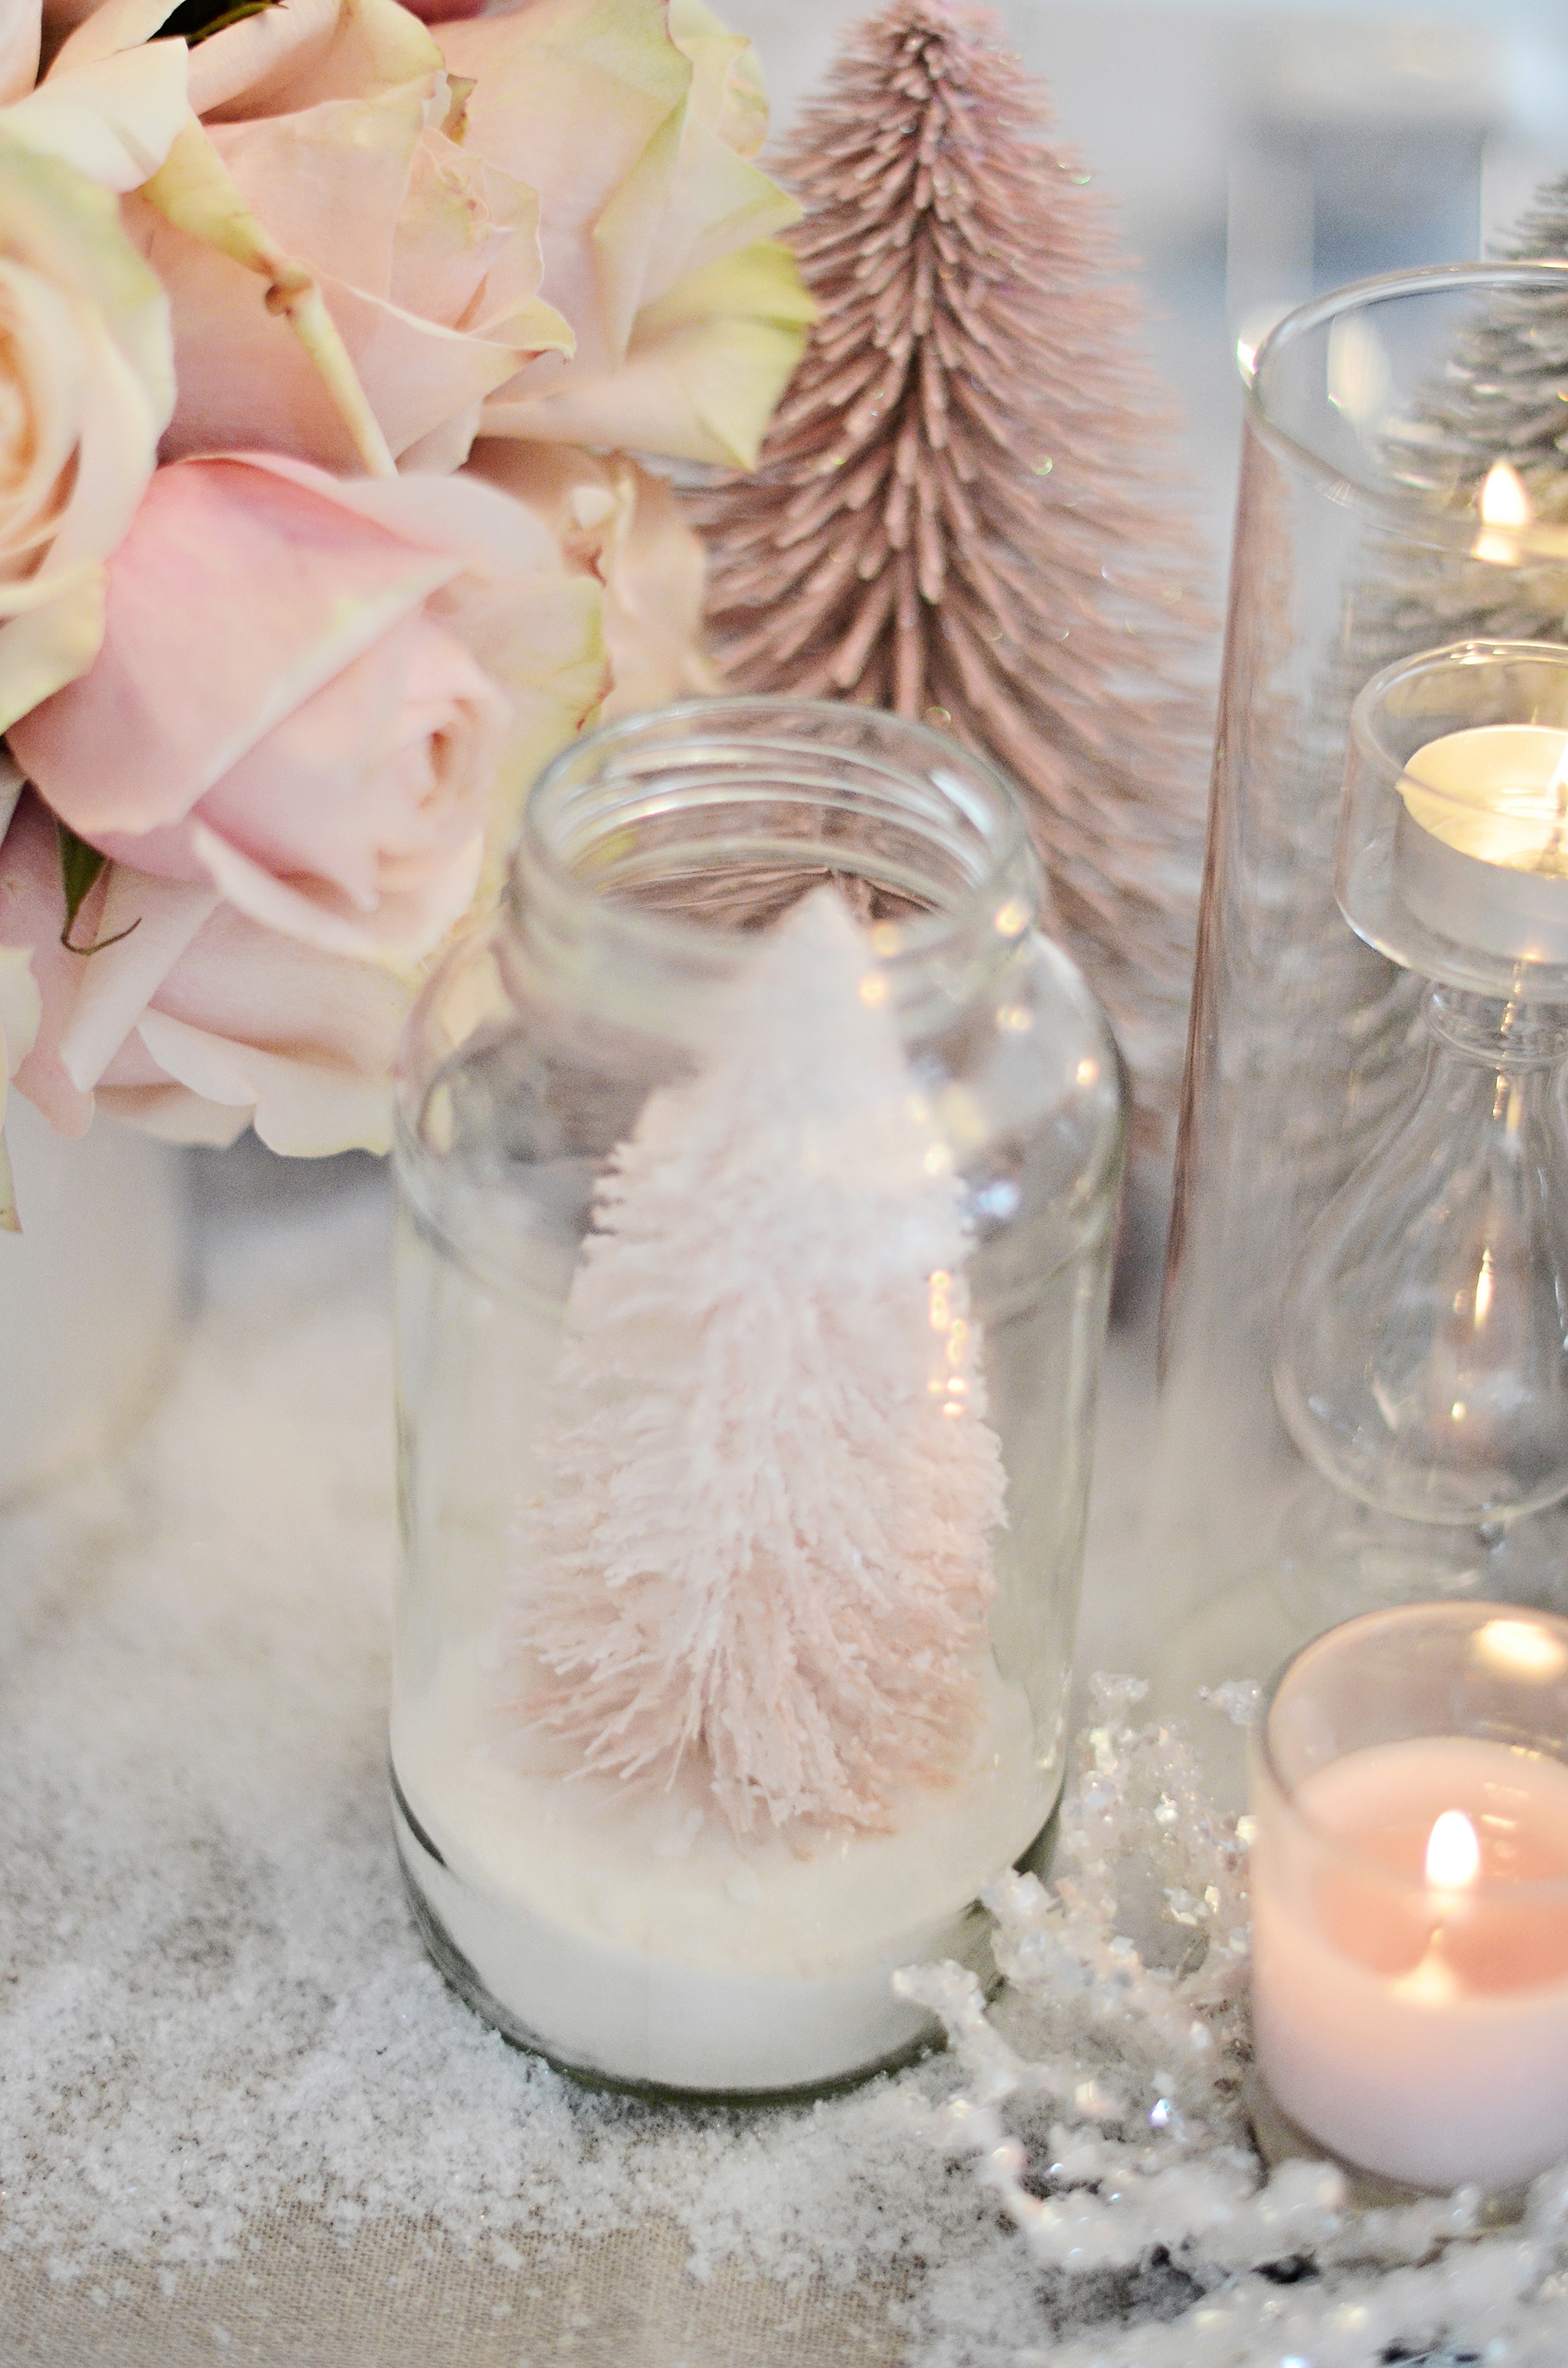 How to Plan a Winter Birthday Party Ideas for Baby's First Birthday